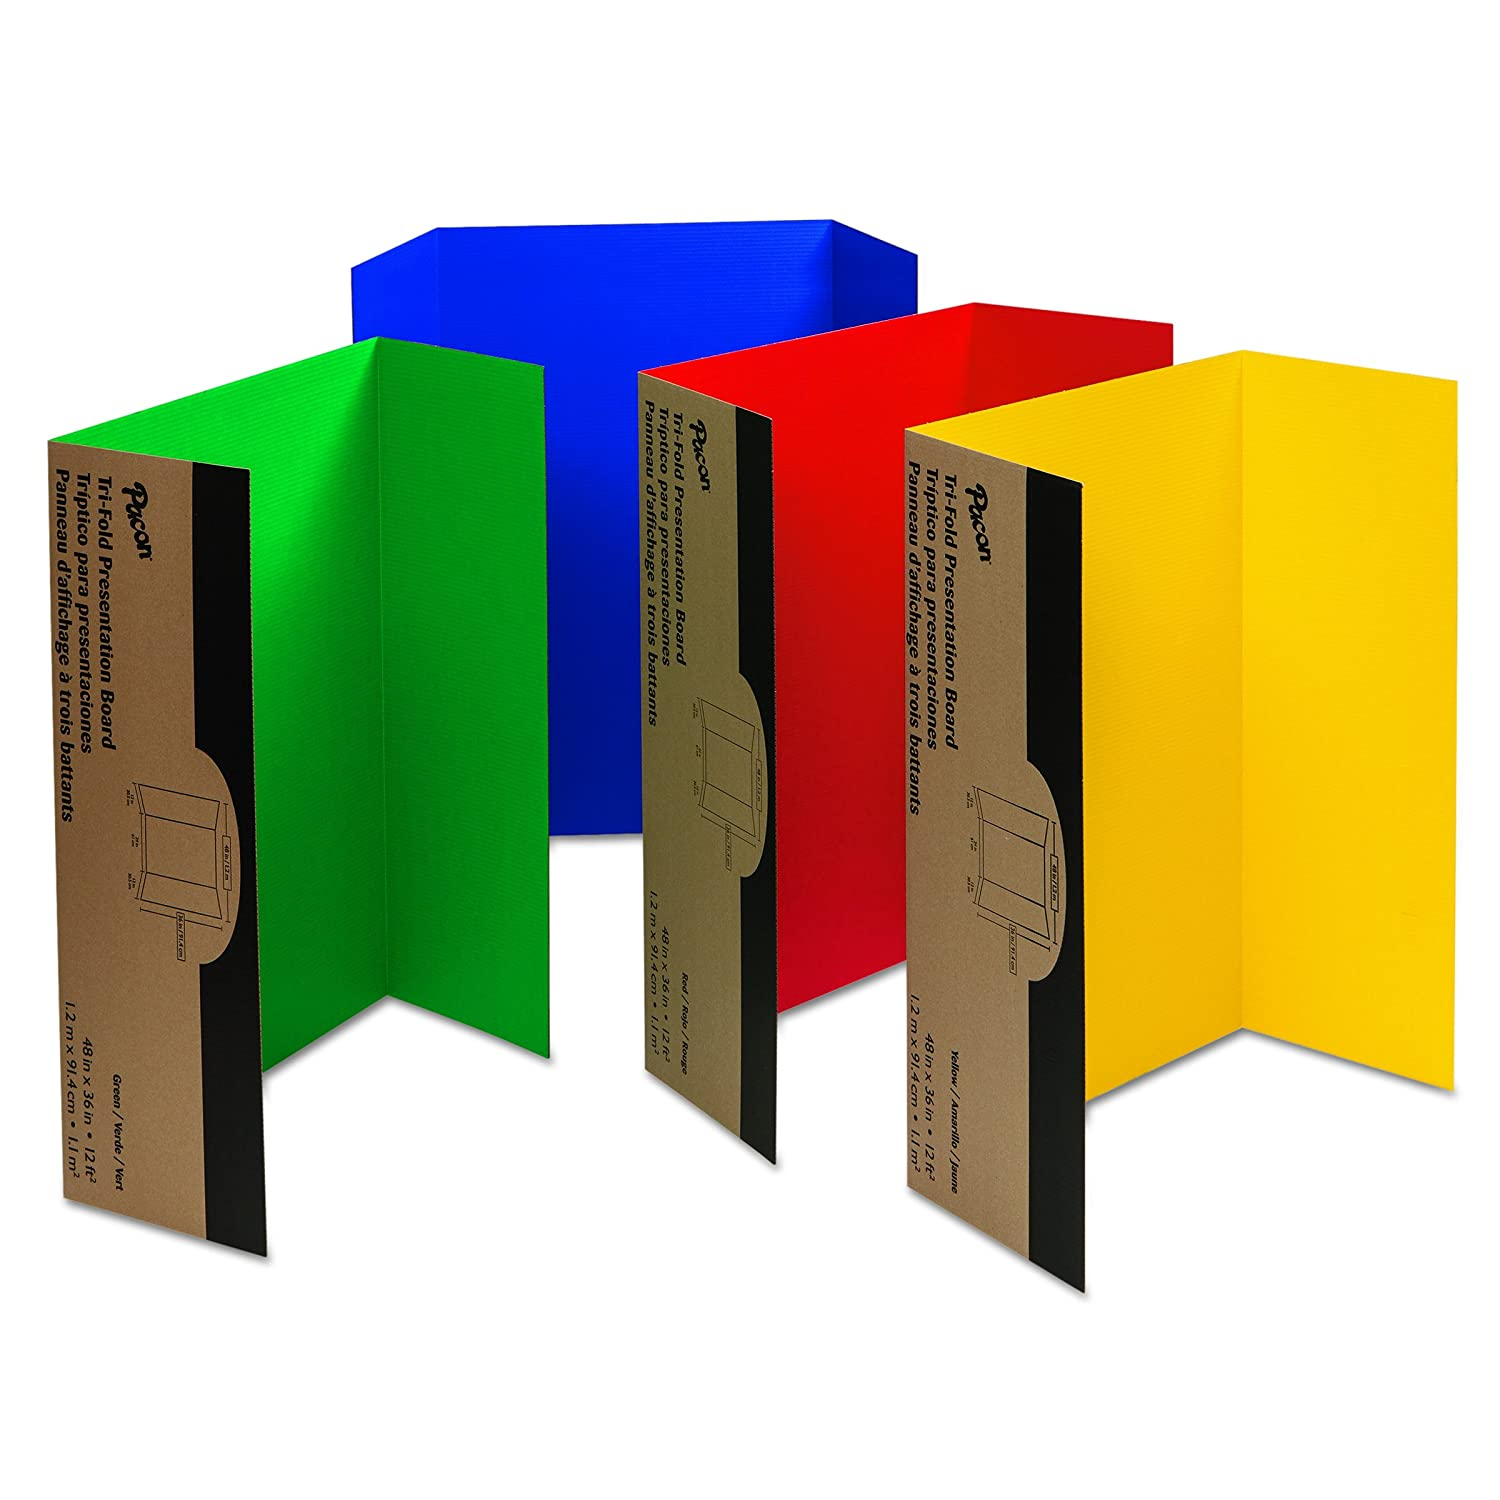 Pacon Corrugated Presentation Board, 48x36, Assorted 4 Colors 48x36 Pacon Corp. 37654